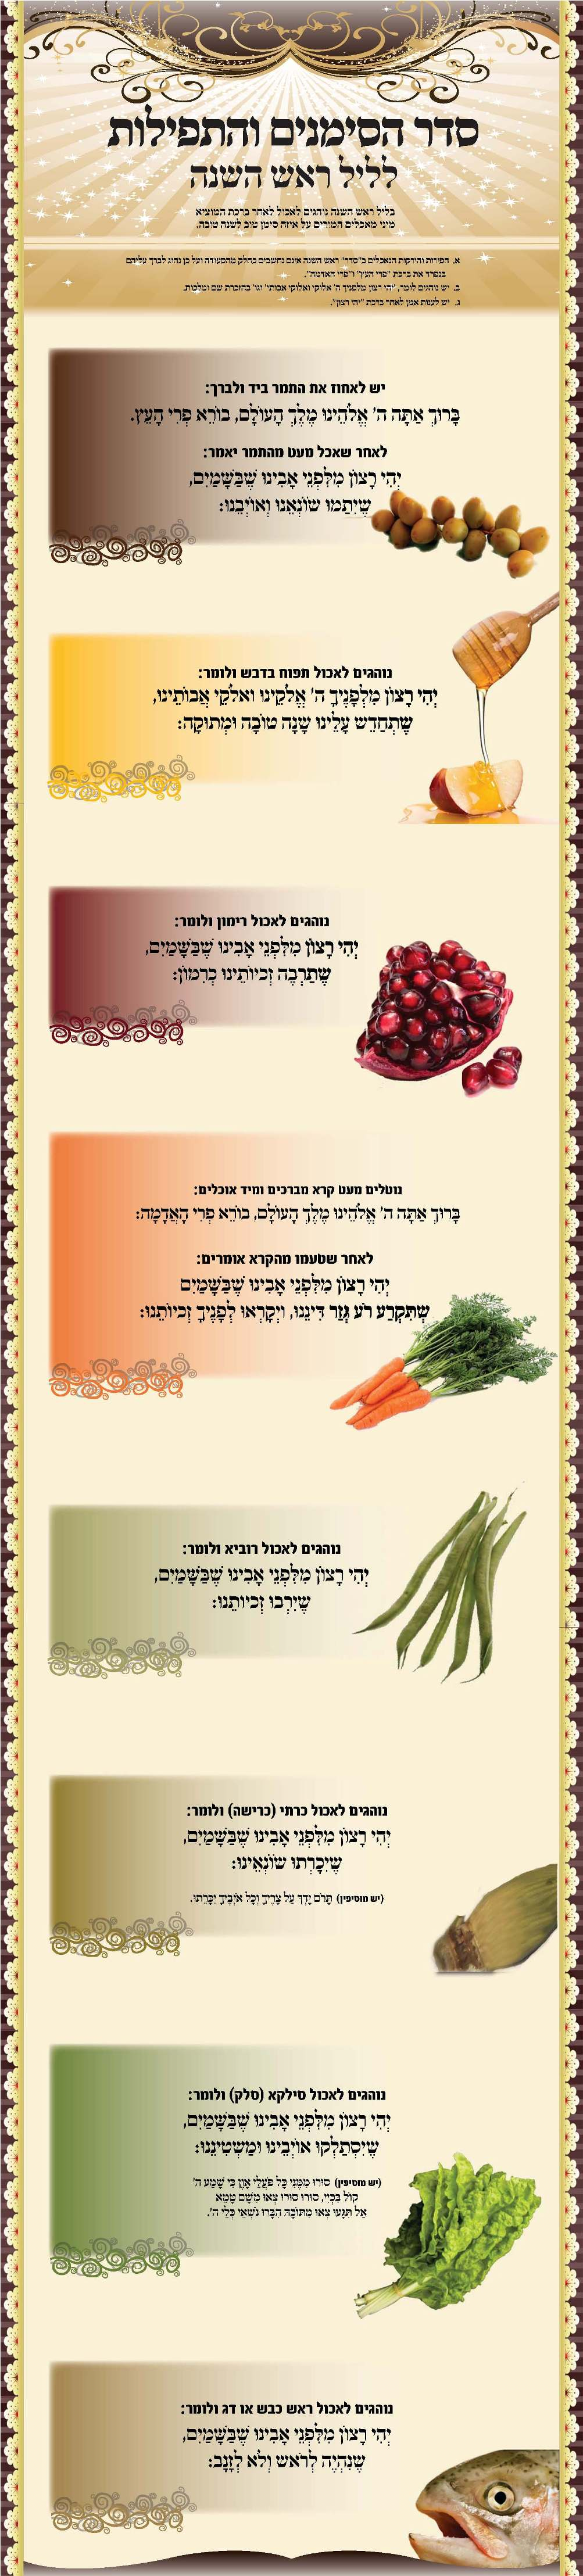 Rosh Hashana Simanim prayers